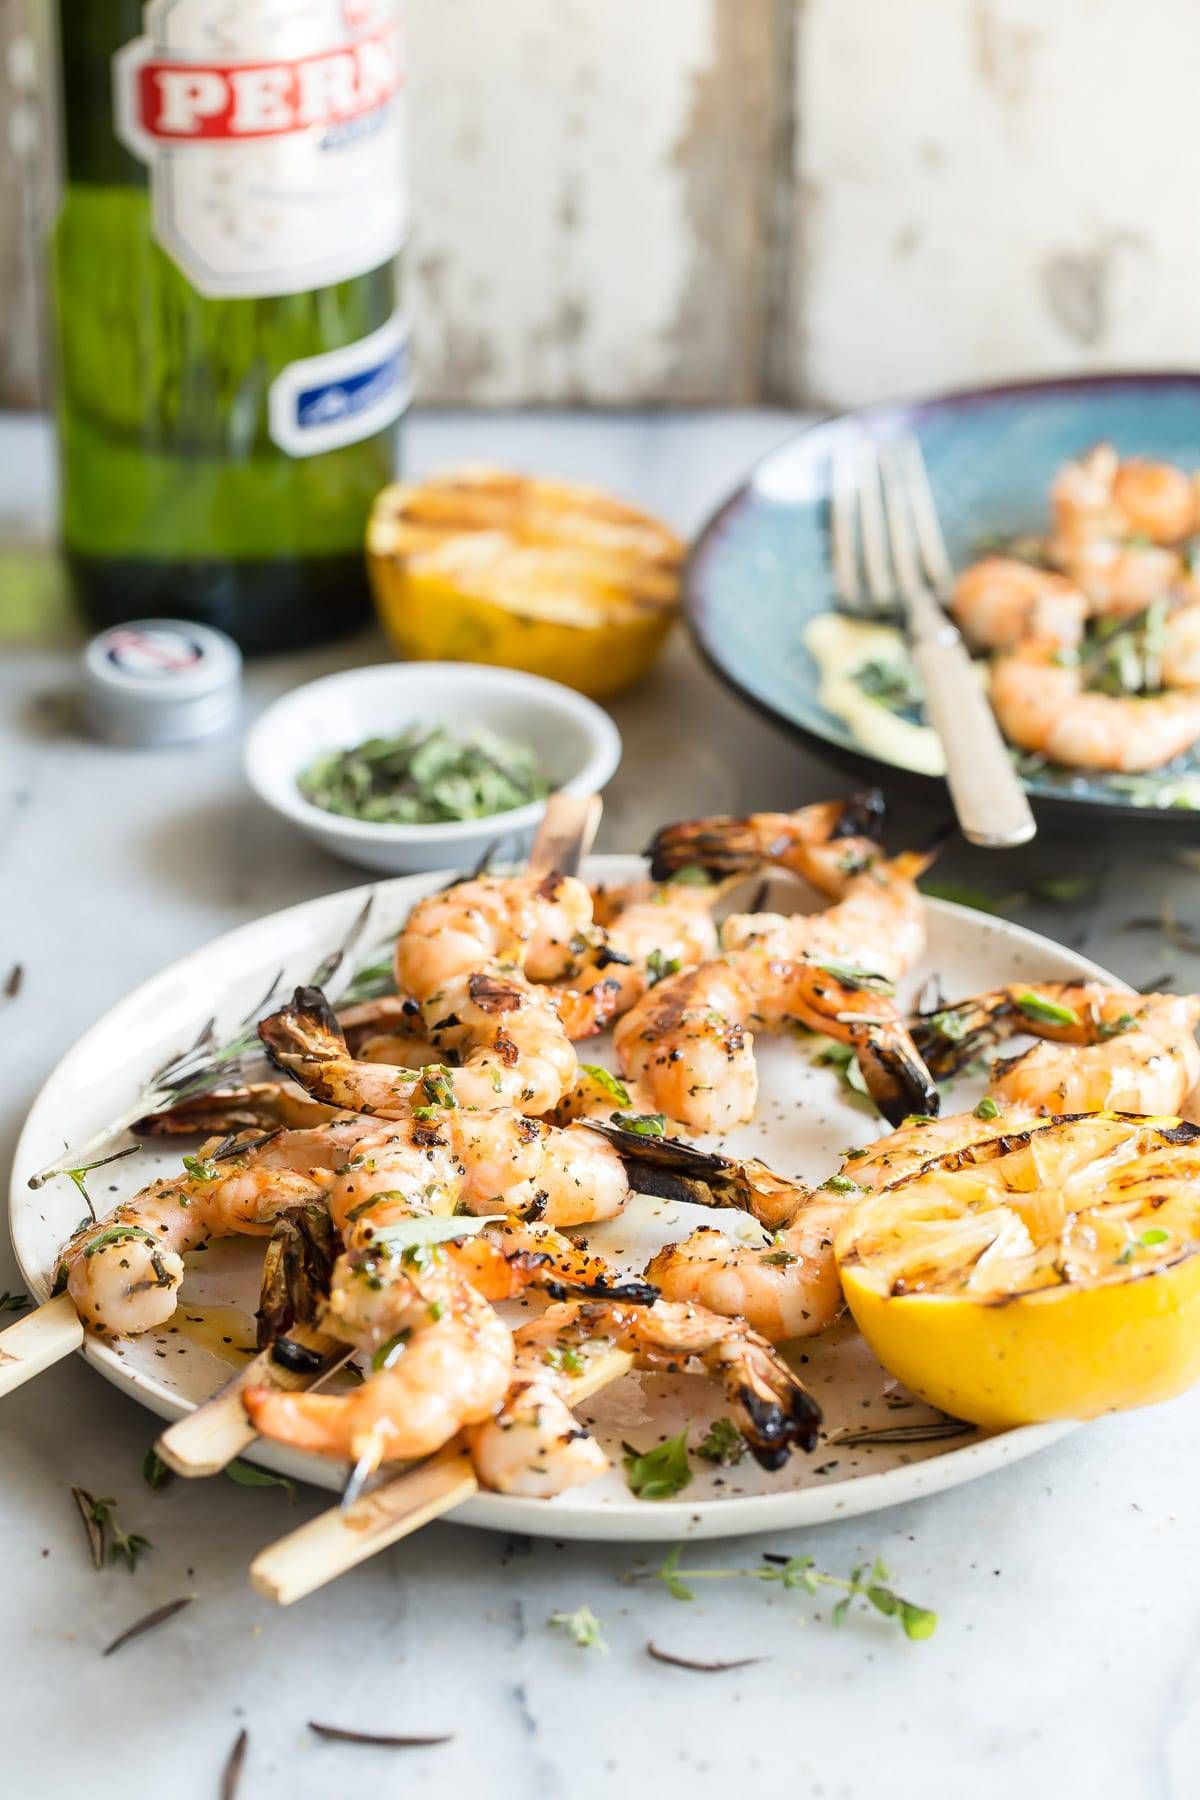 Grilled Shrimp Skewers with Lemon Aioli